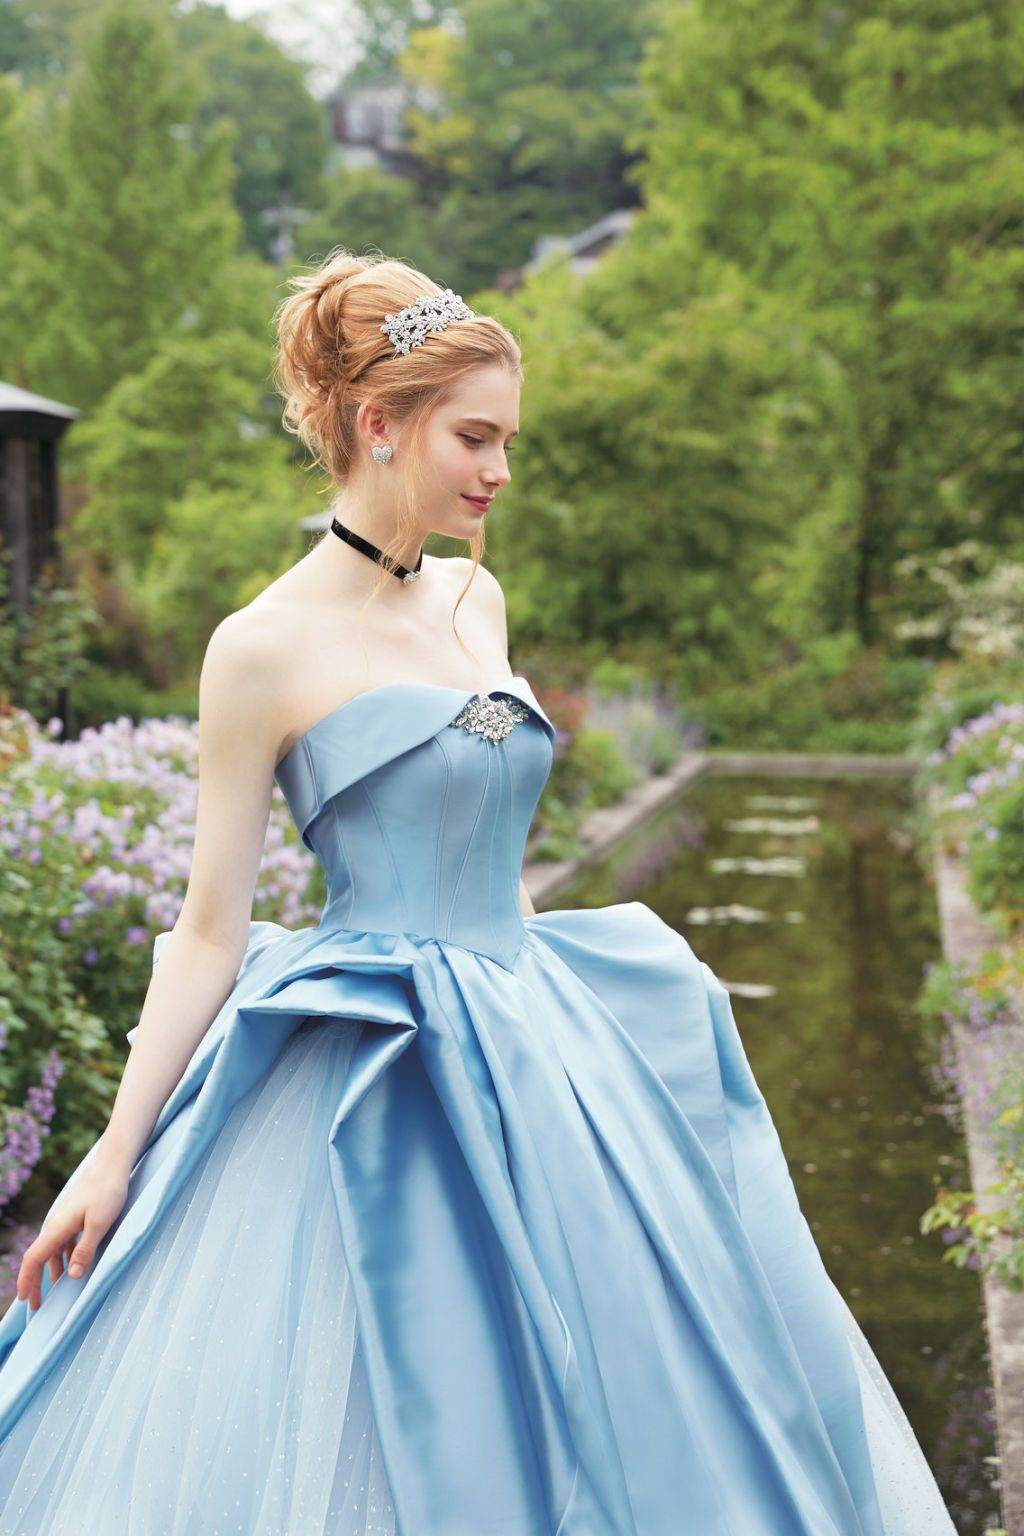 Take a Look at These Gorgeous Disney Princess Wedding Dresses ...